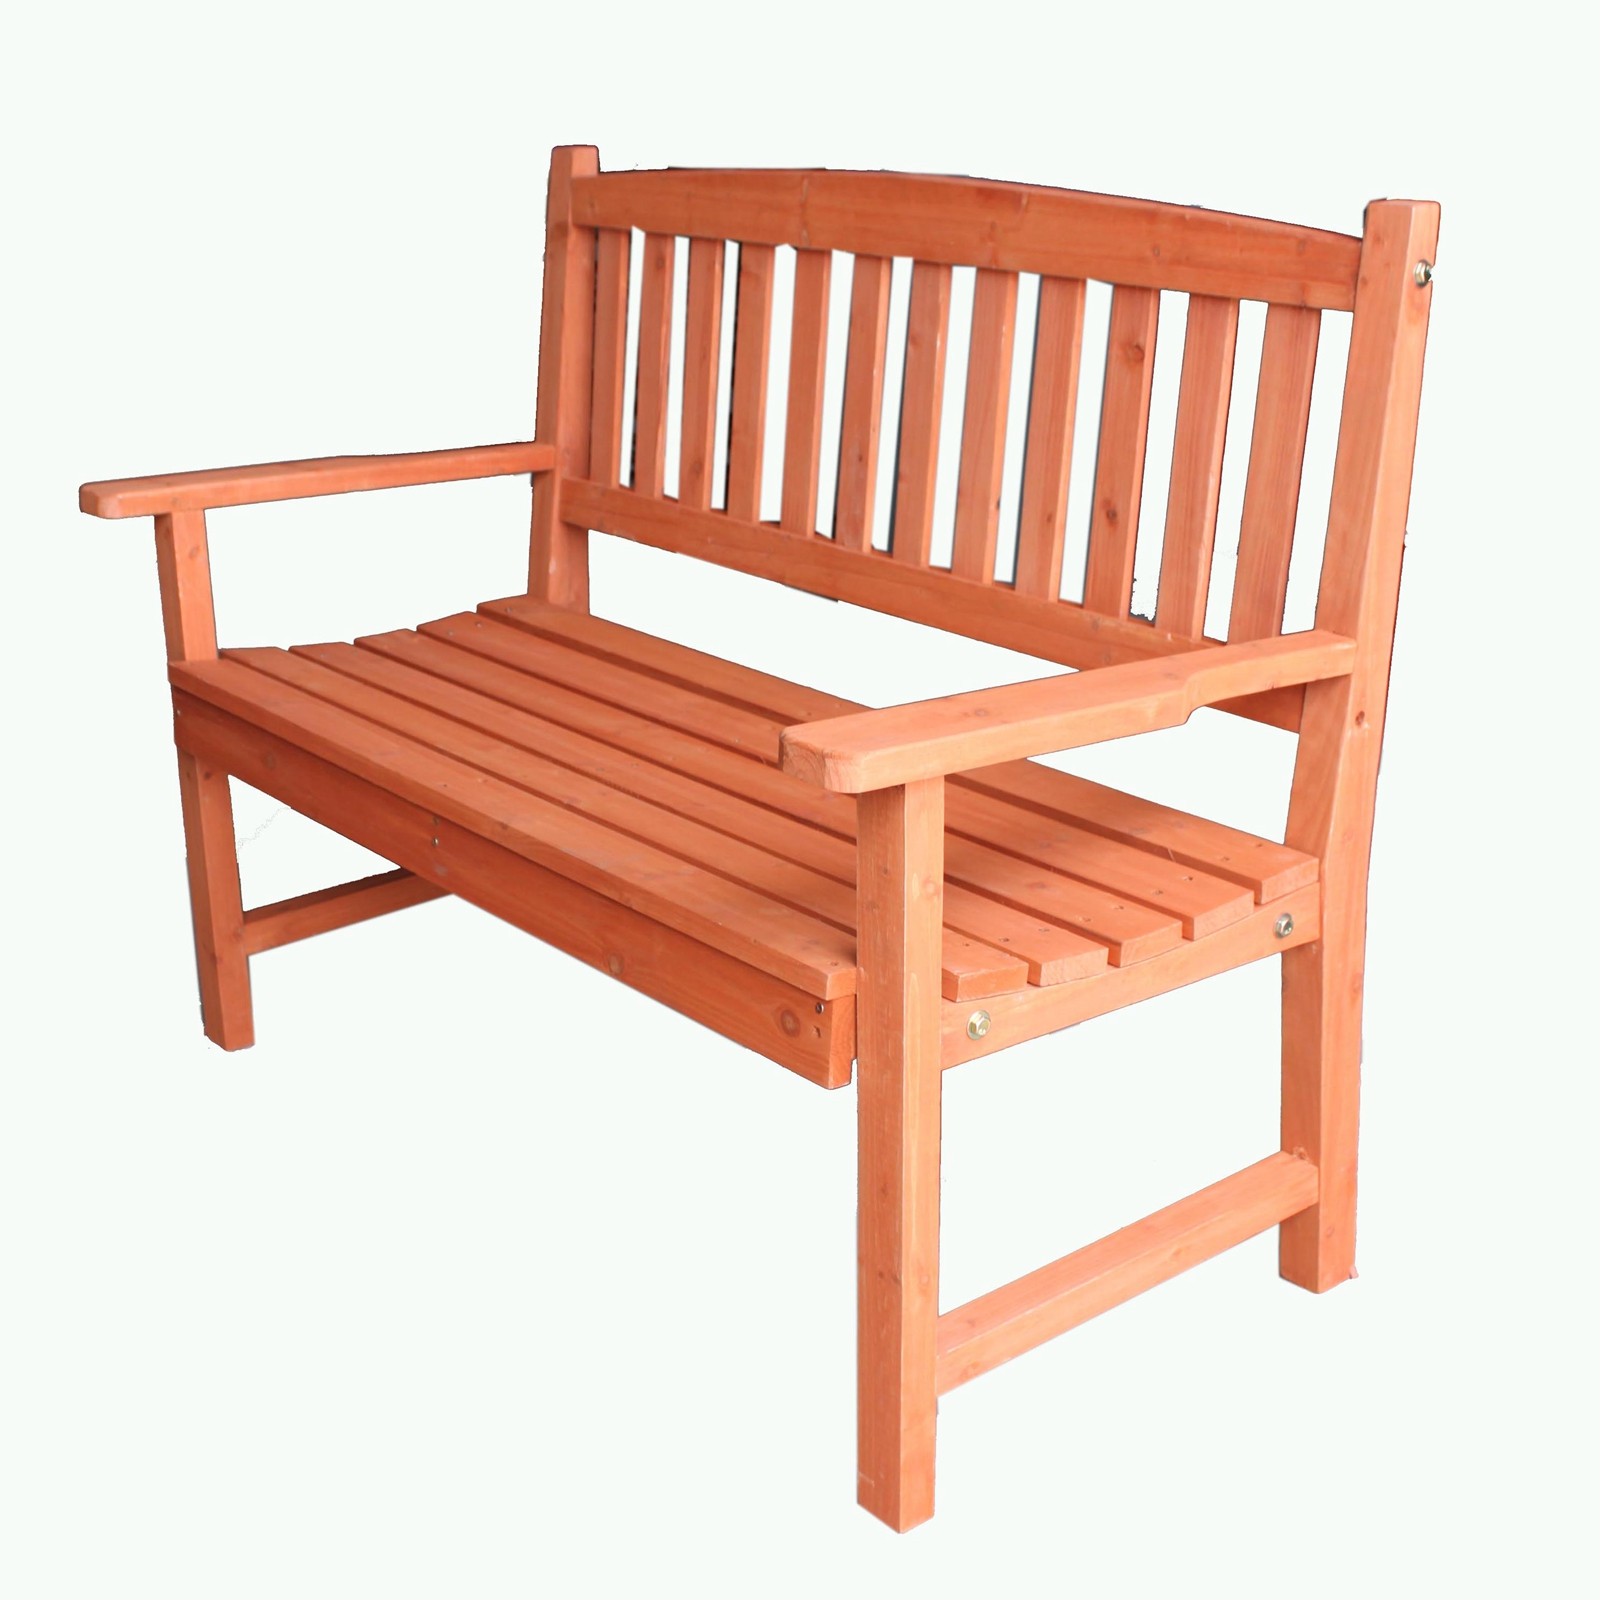 Foxhunter Wooden Garden Bench 2 Seat Seater Hardwood Outdoor Park Patio Wgb03